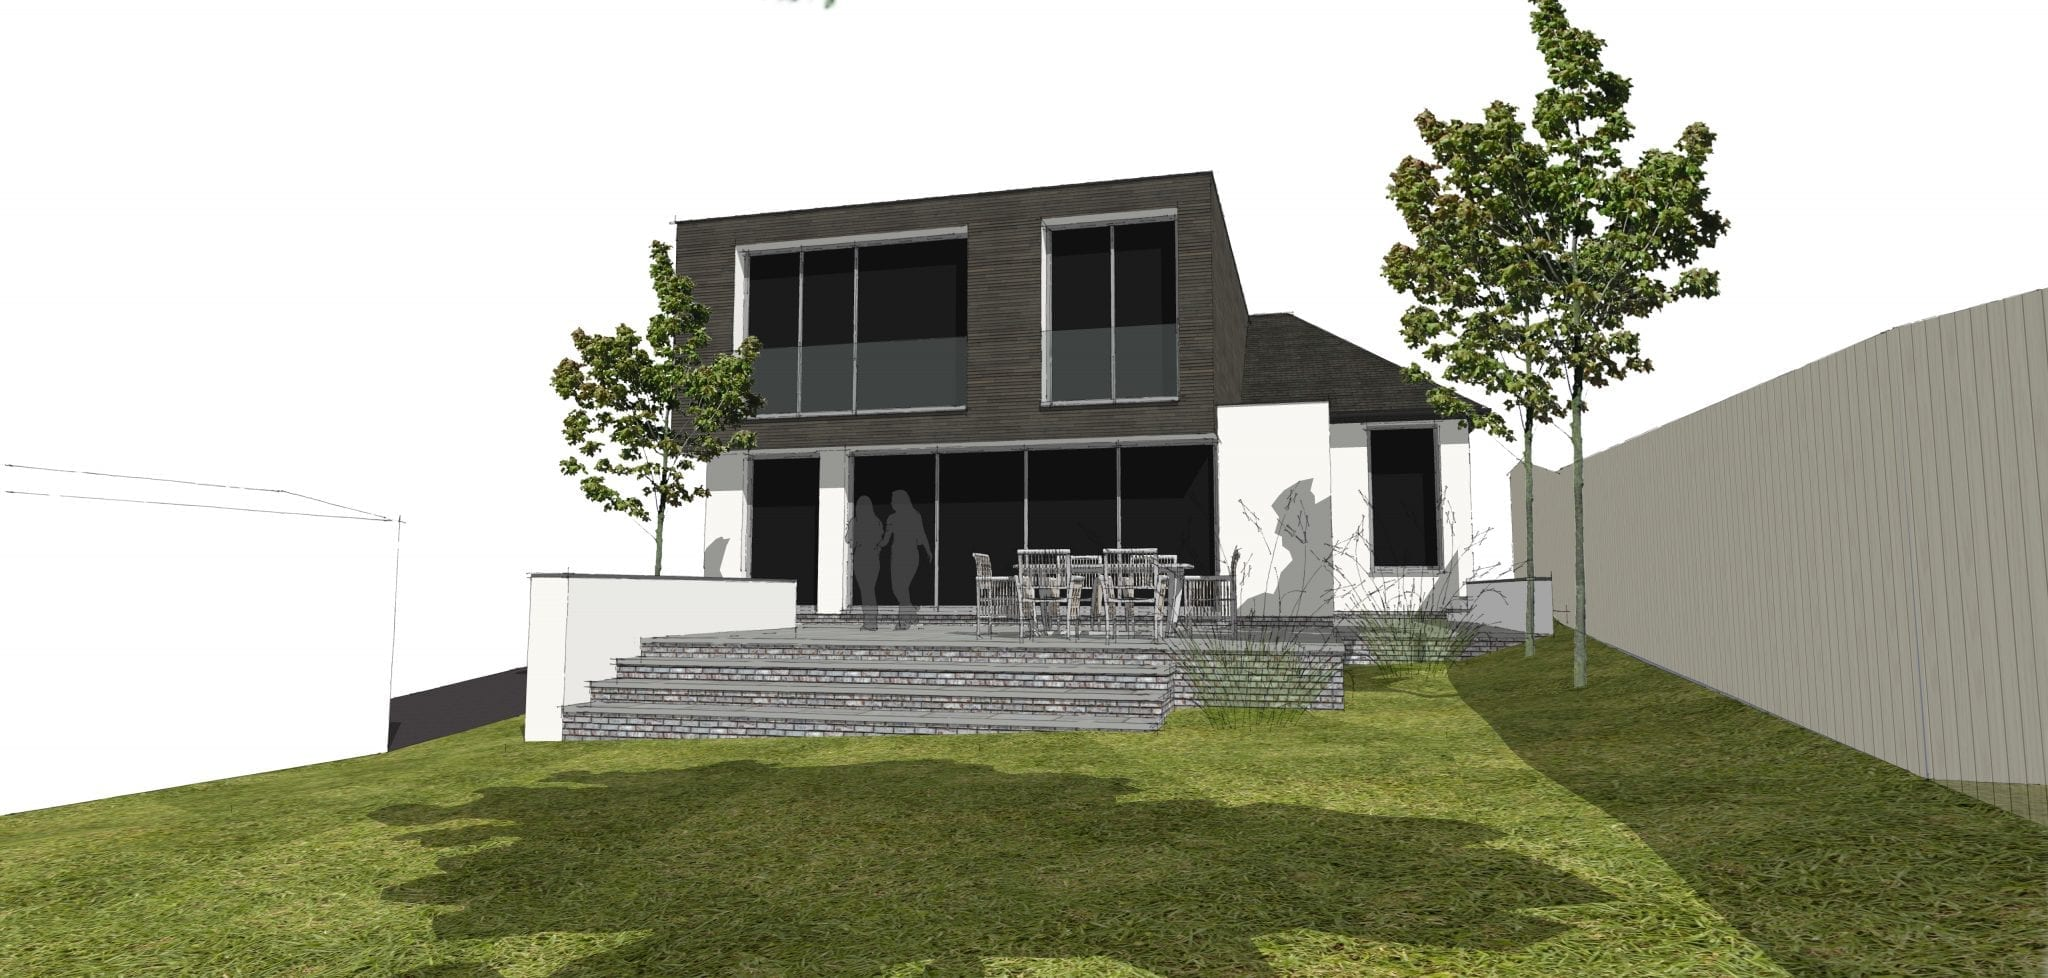 Contemporary extension to bungalow gains Approval…